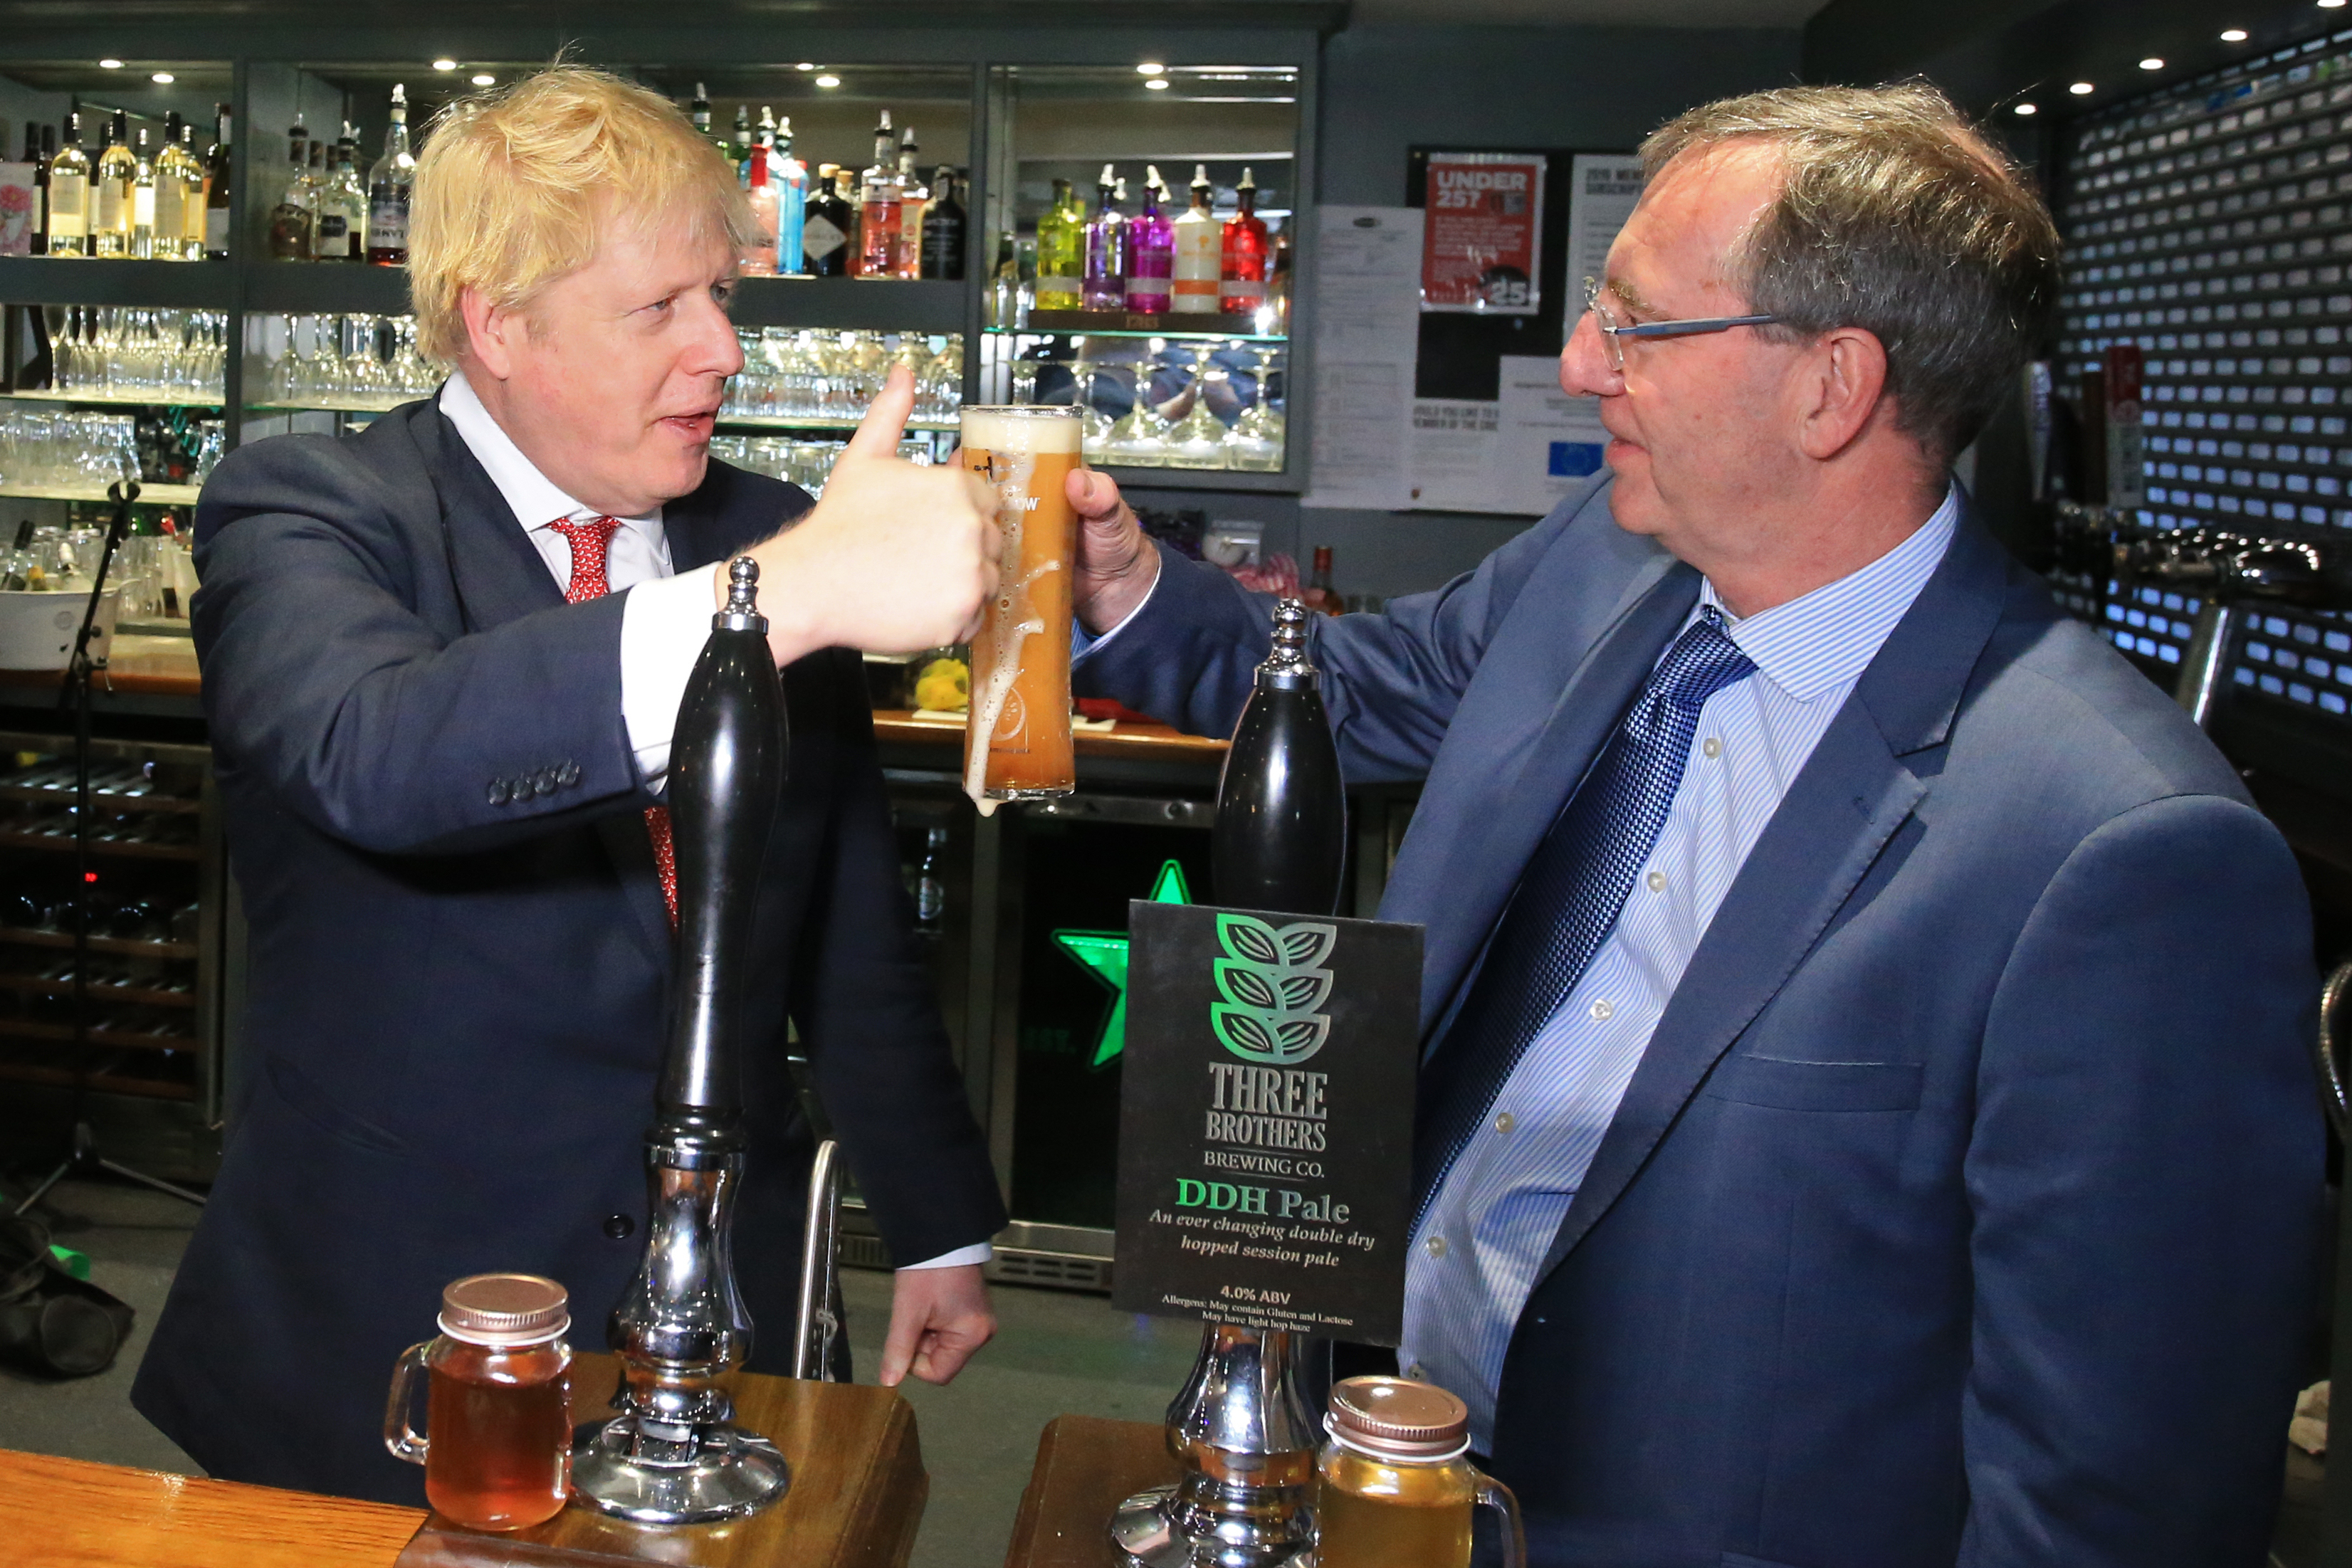 Prime Minister Boris Johnson Visits County Durham Following Election Victory